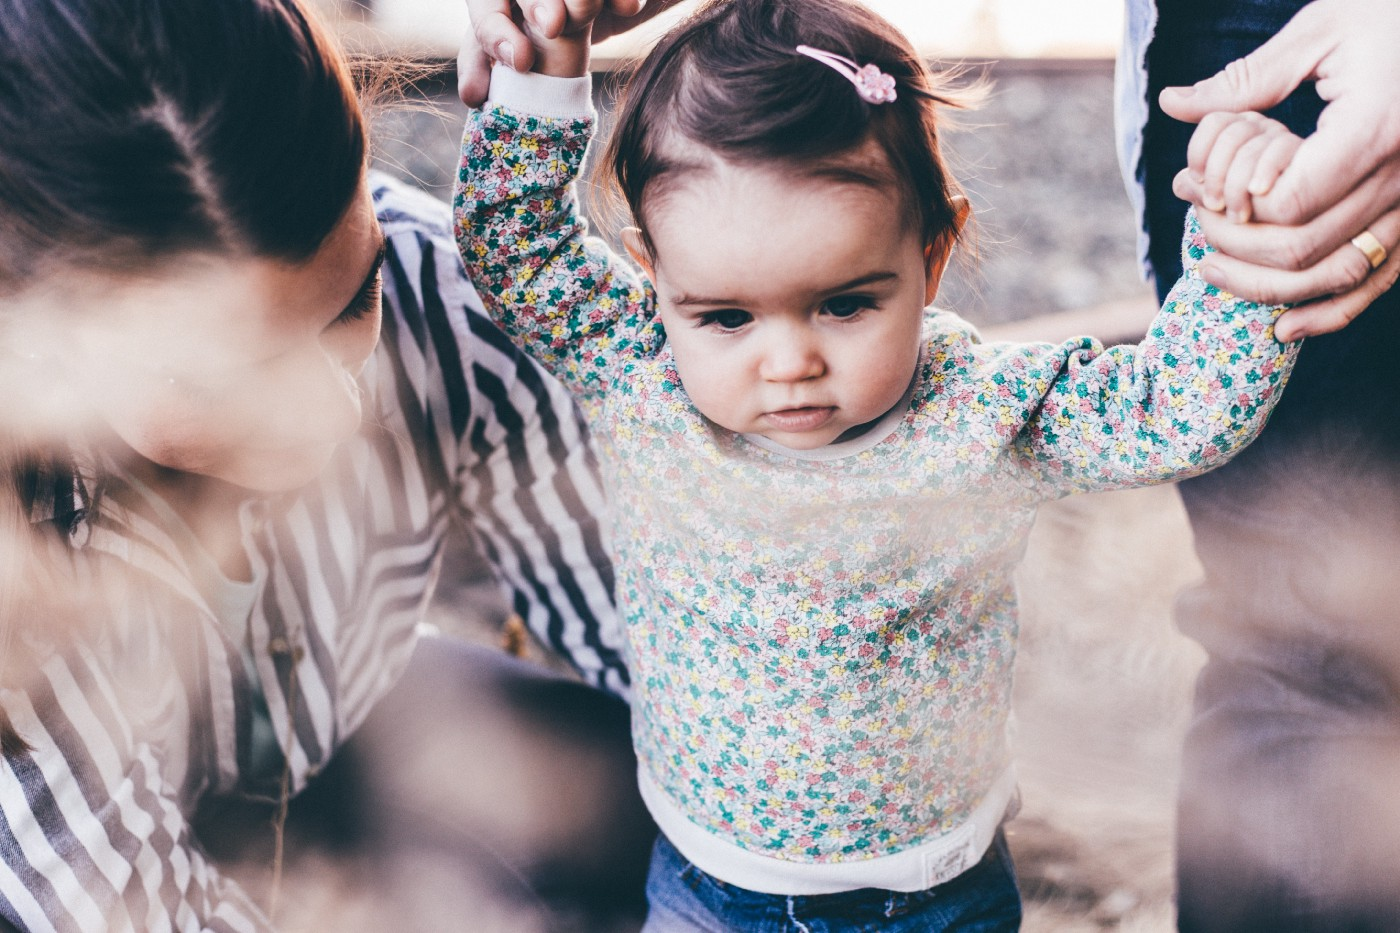 Toddler learning to walk holding parent's hand